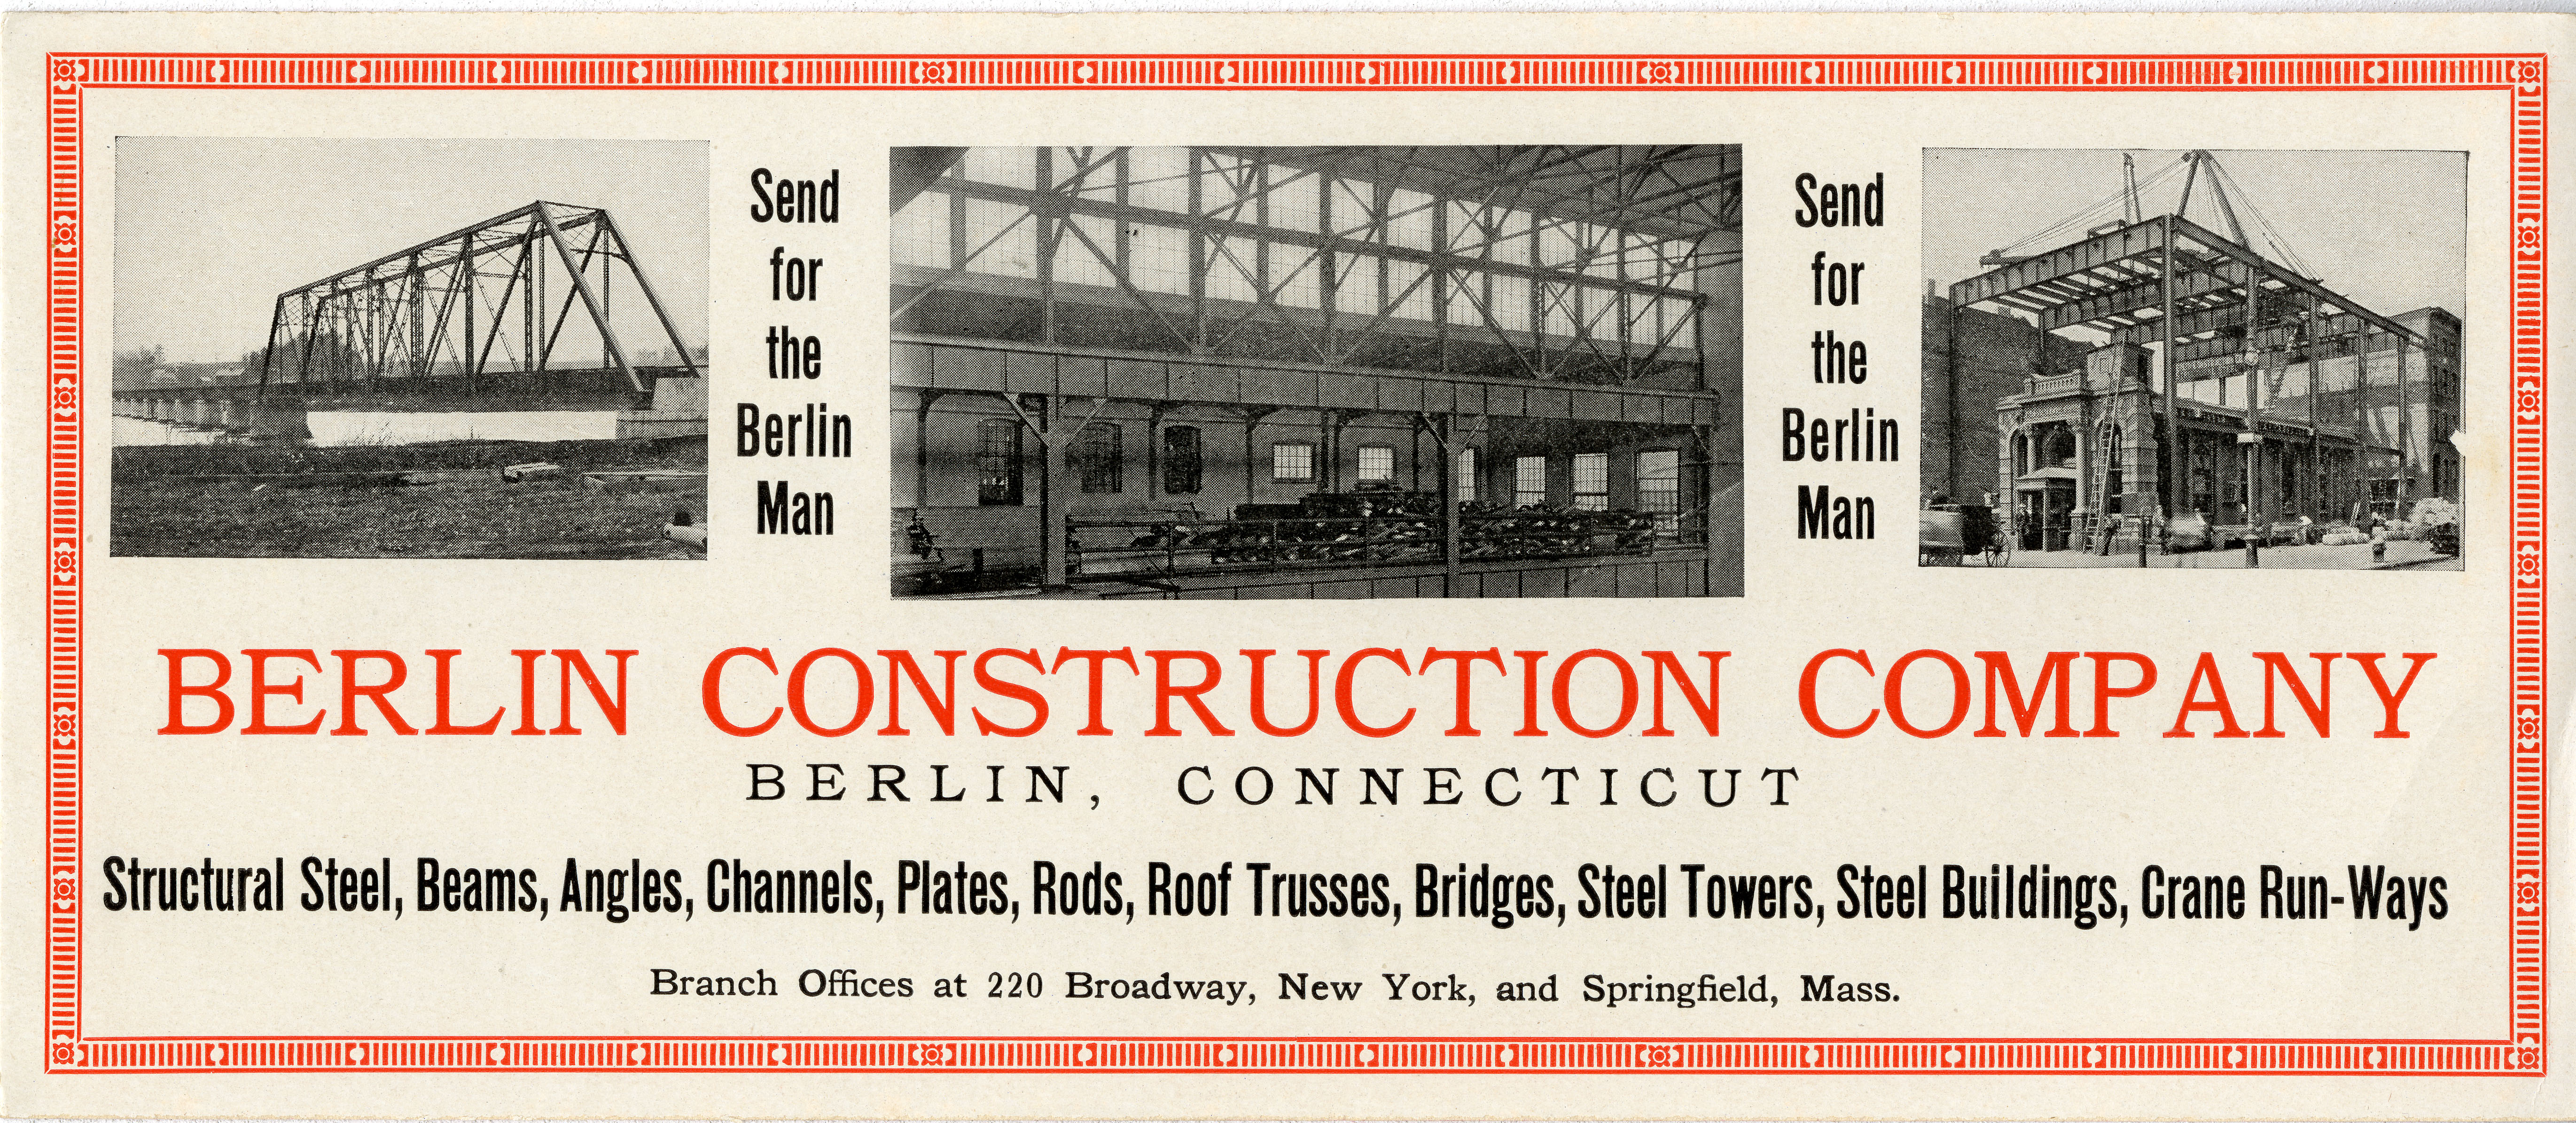 Berlin Construction Company advertising card, undated.